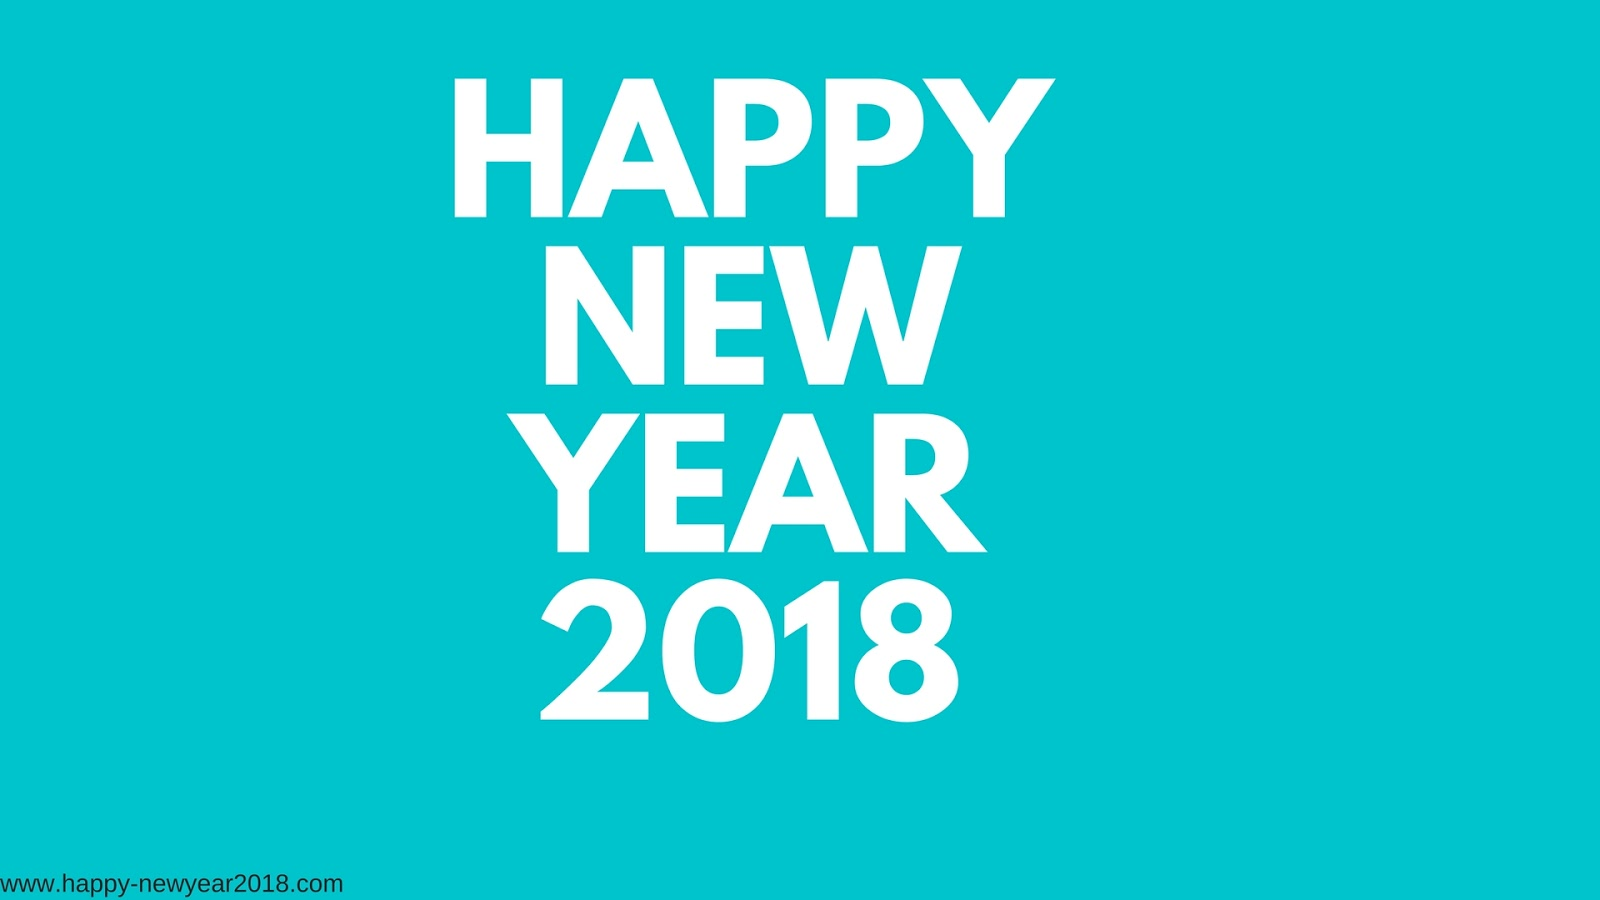 New Year images wishes quotes 2018